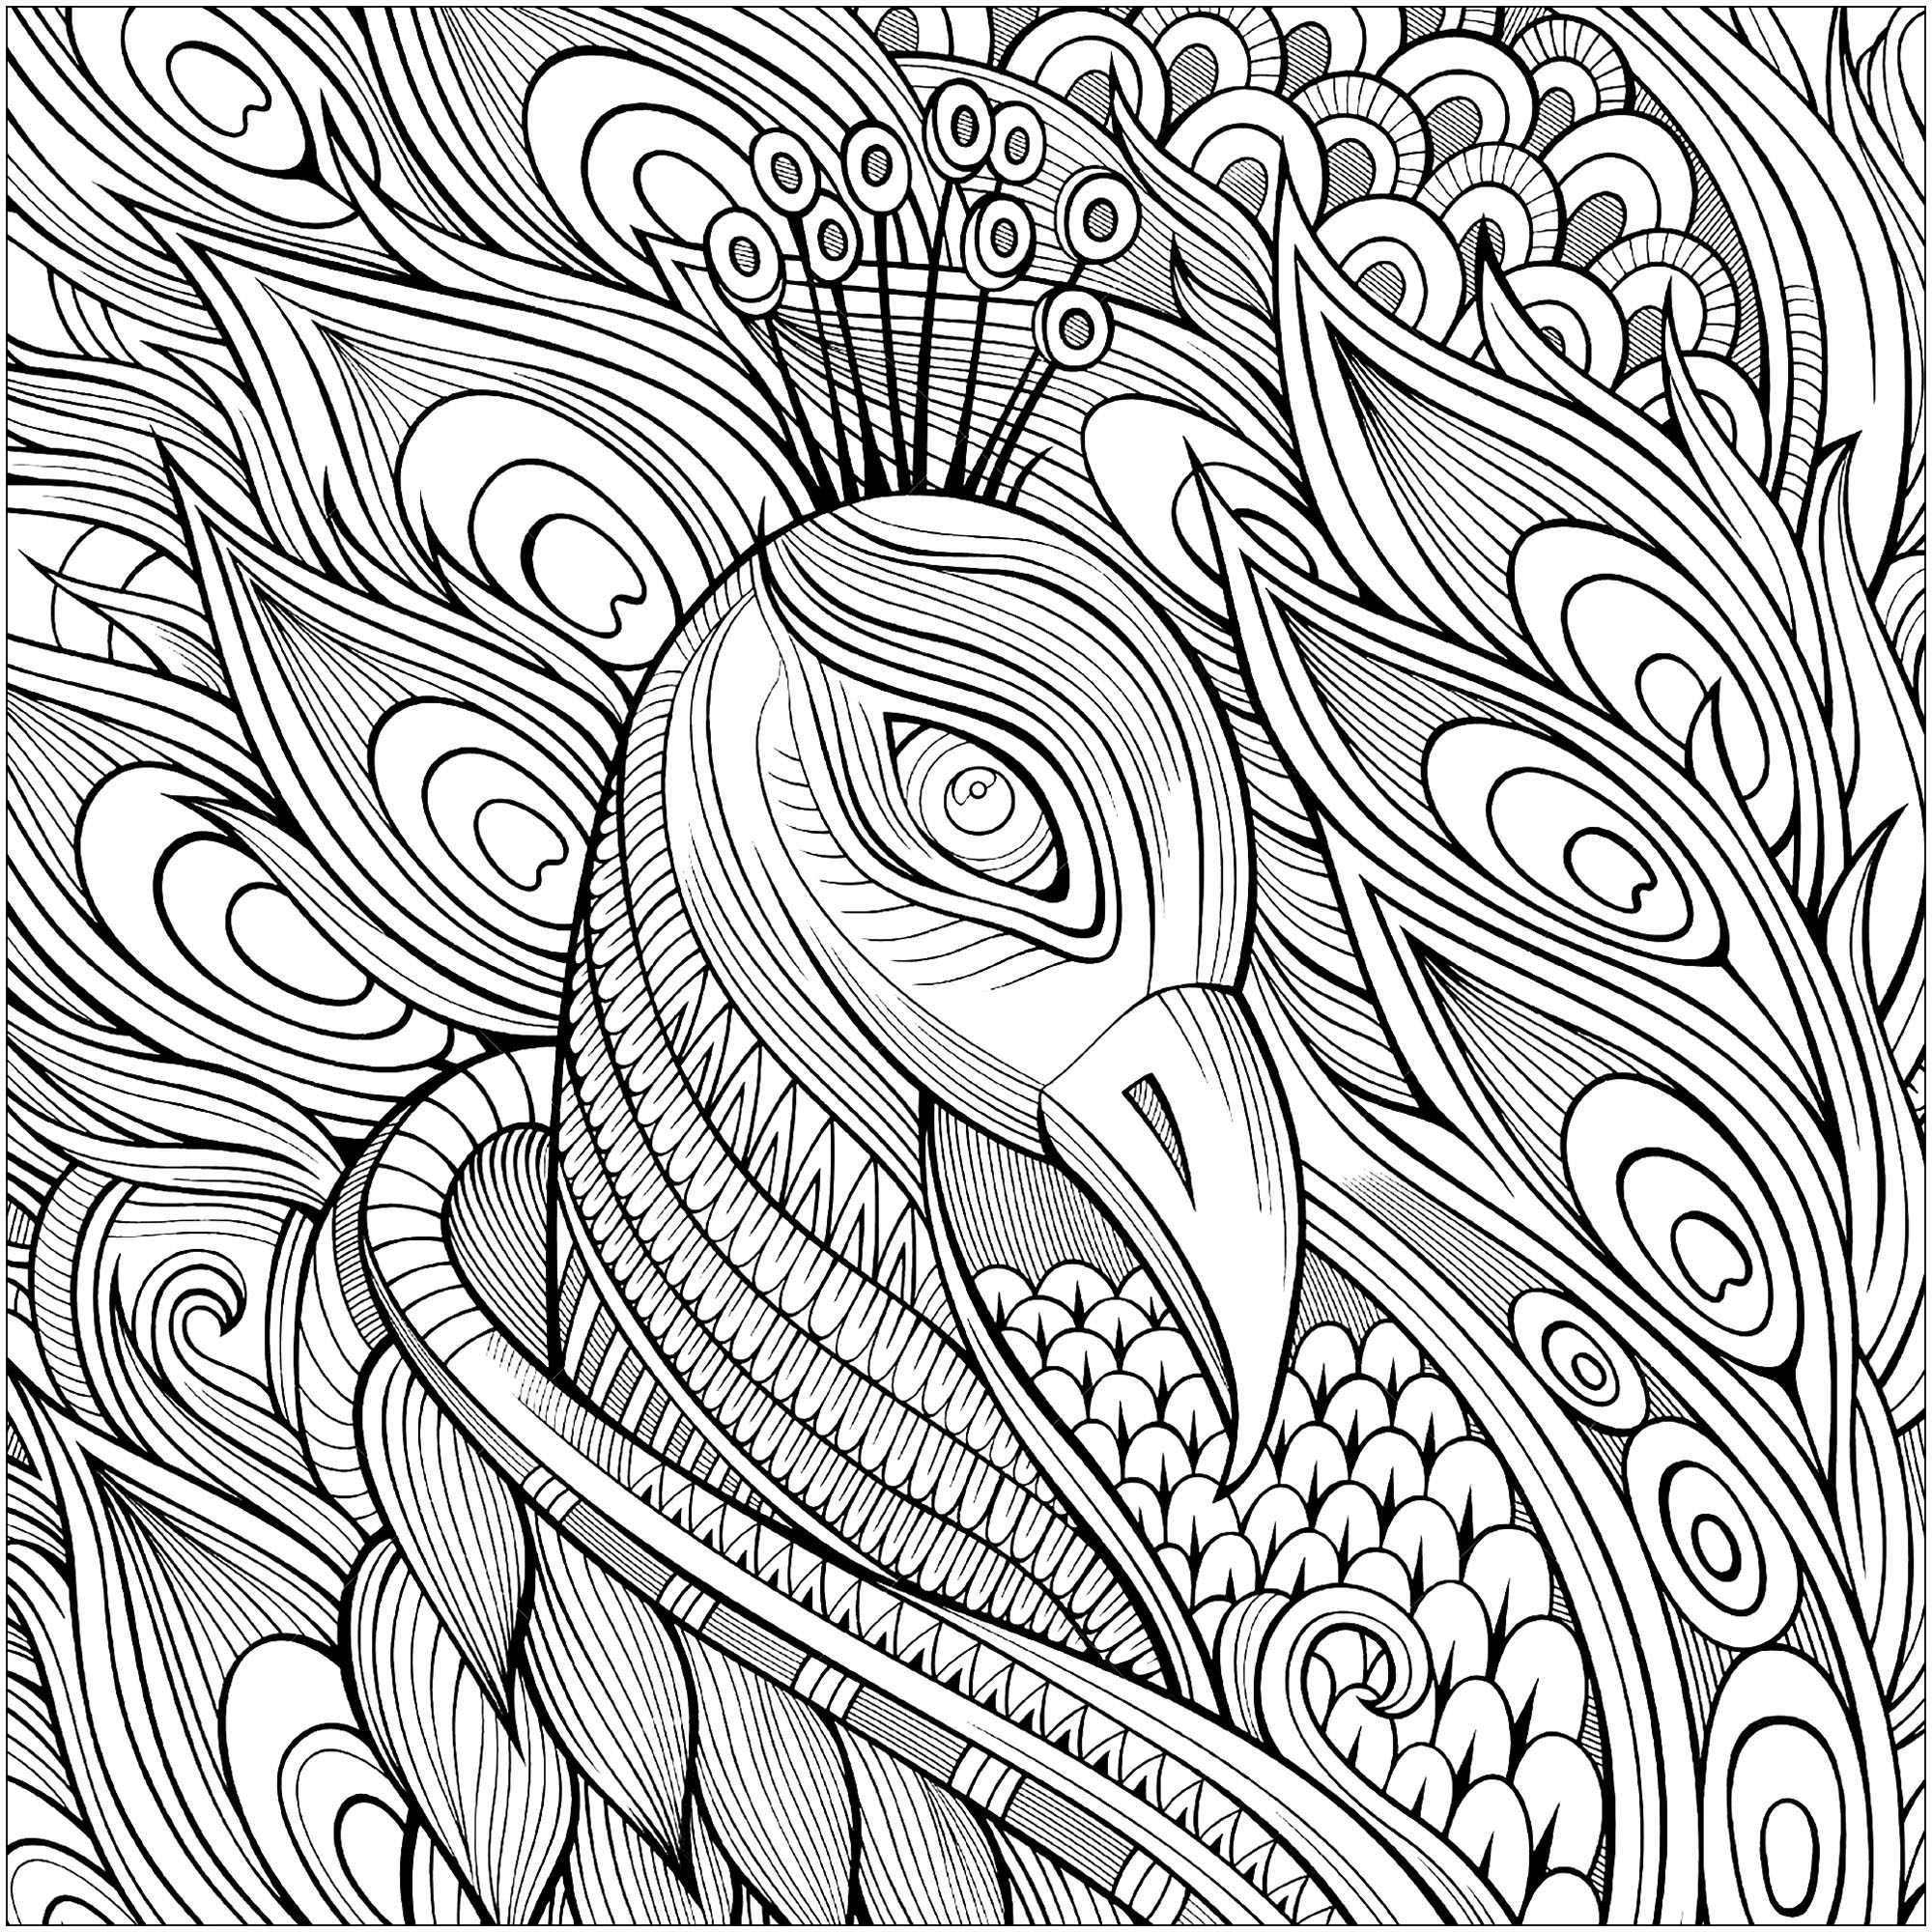 peacock coloring outline of a peacock drawing at getdrawings free download peacock coloring